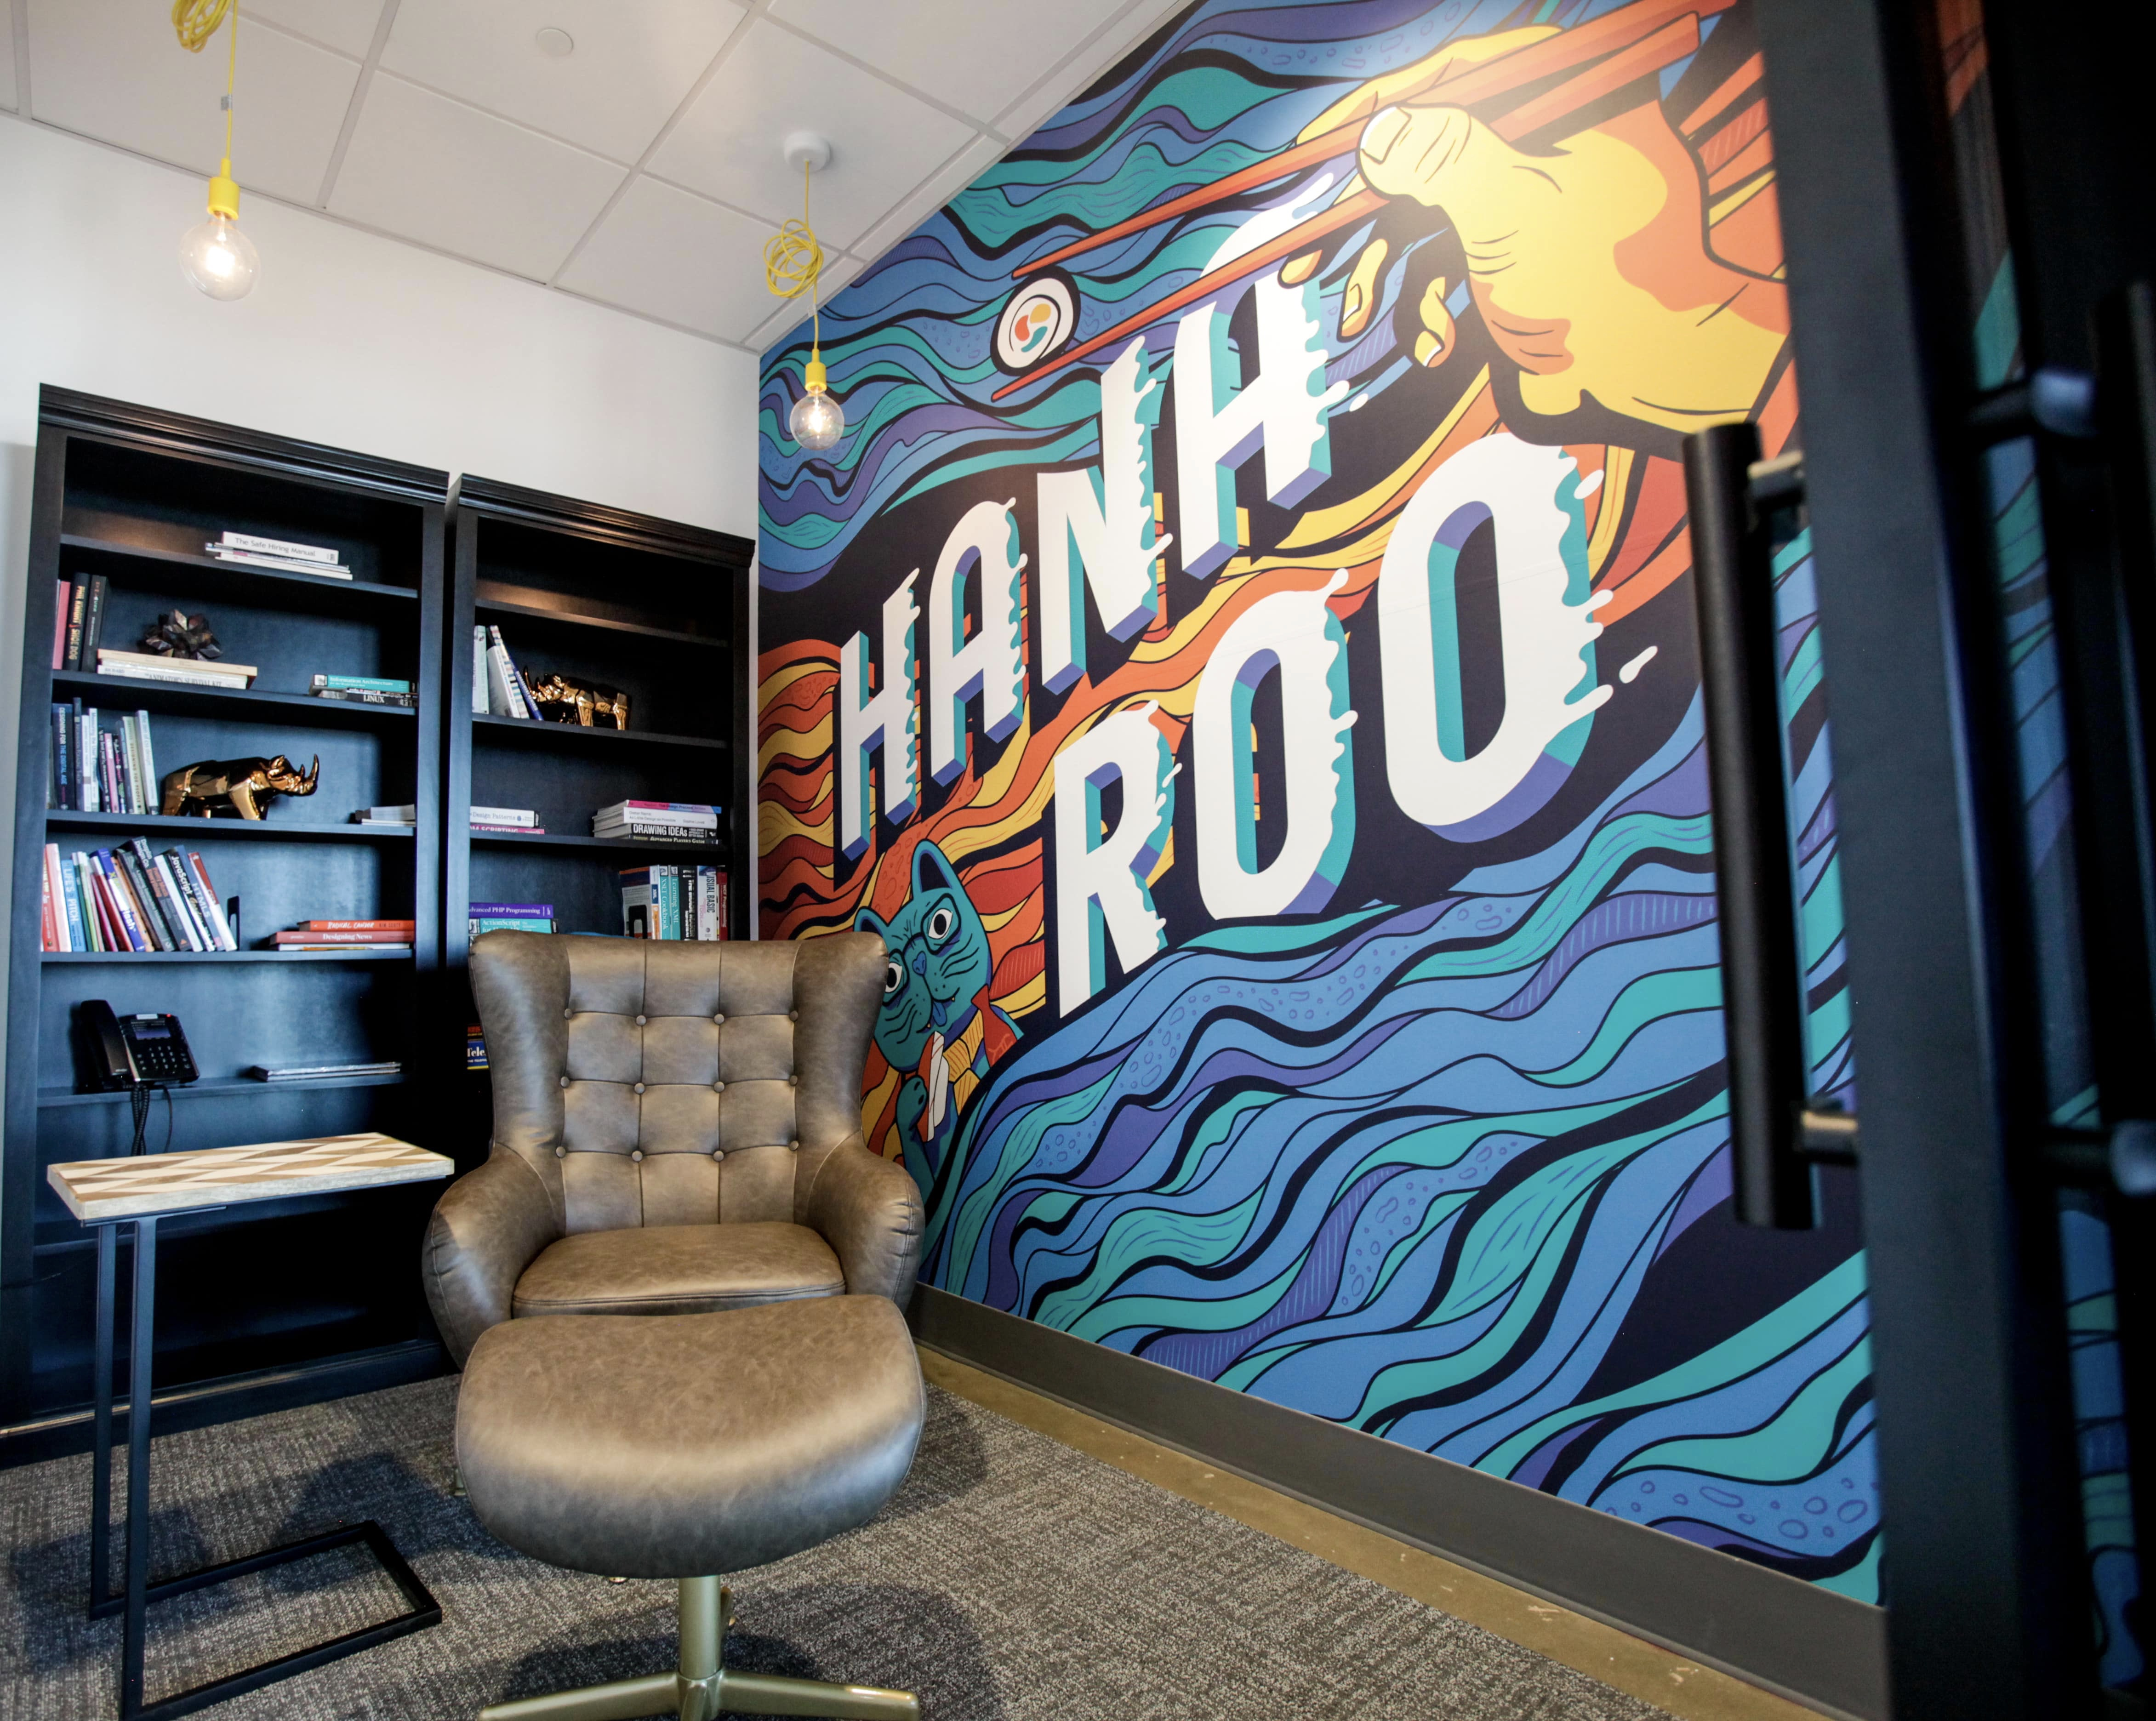 The smallest meeting room is a named Hanaroo, paying homage to a memorable sushi joint in Little Rock where the bravest would venture during trips to Heifer International. It features one of several murals around the office, this one depicting chopsticks, and an adorable cat amidst waves and the word